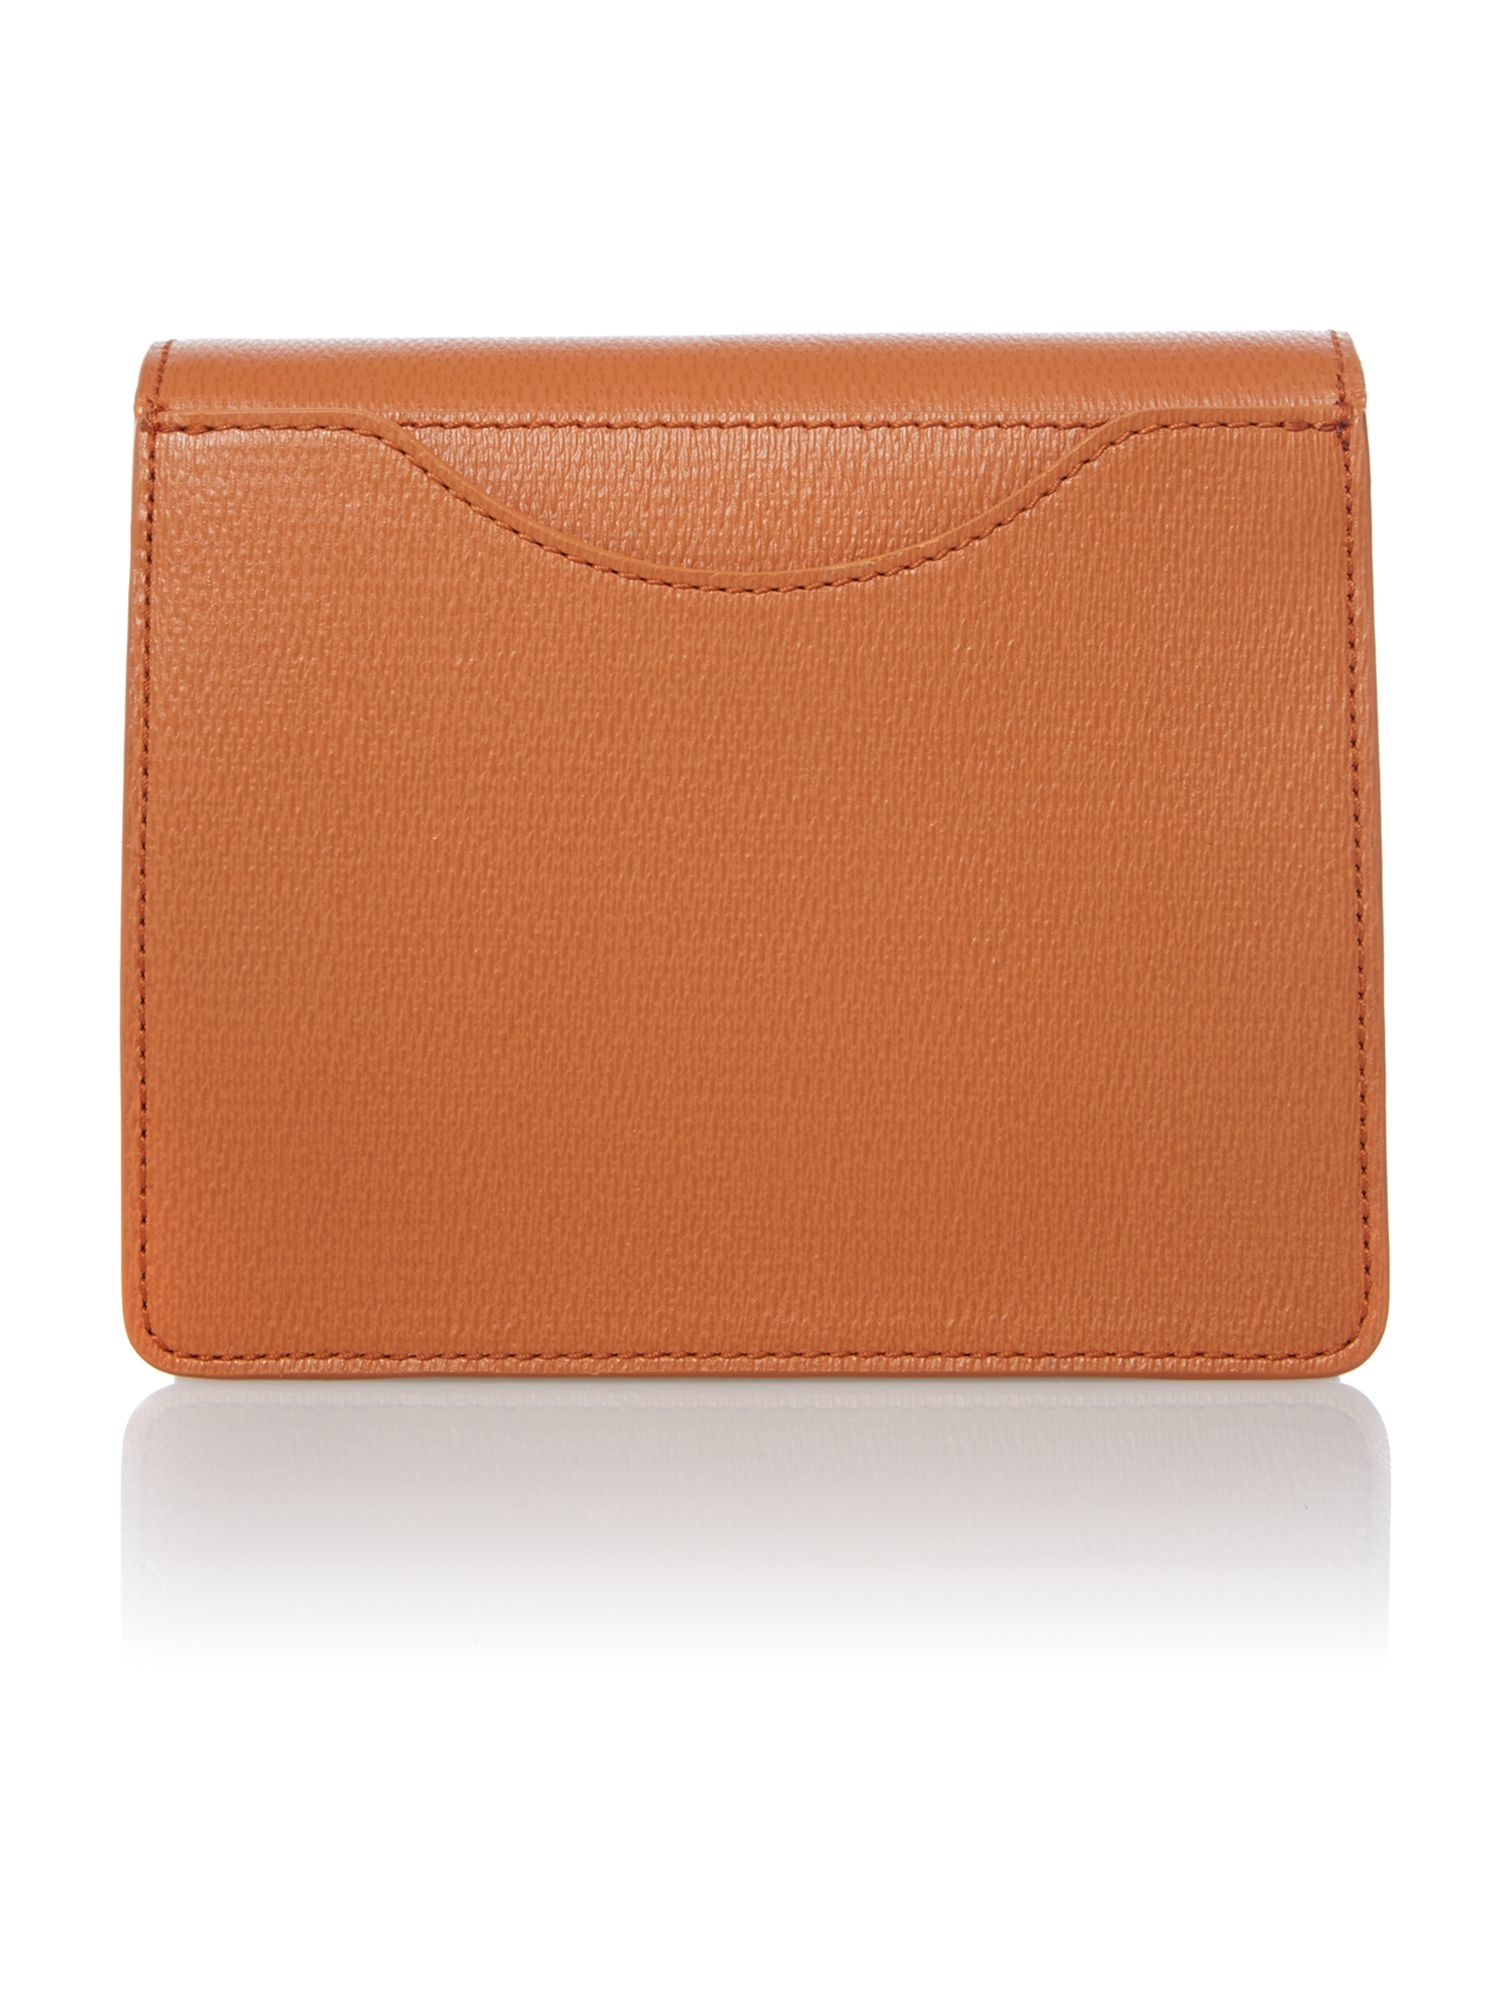 Orange foldover shoulder bag